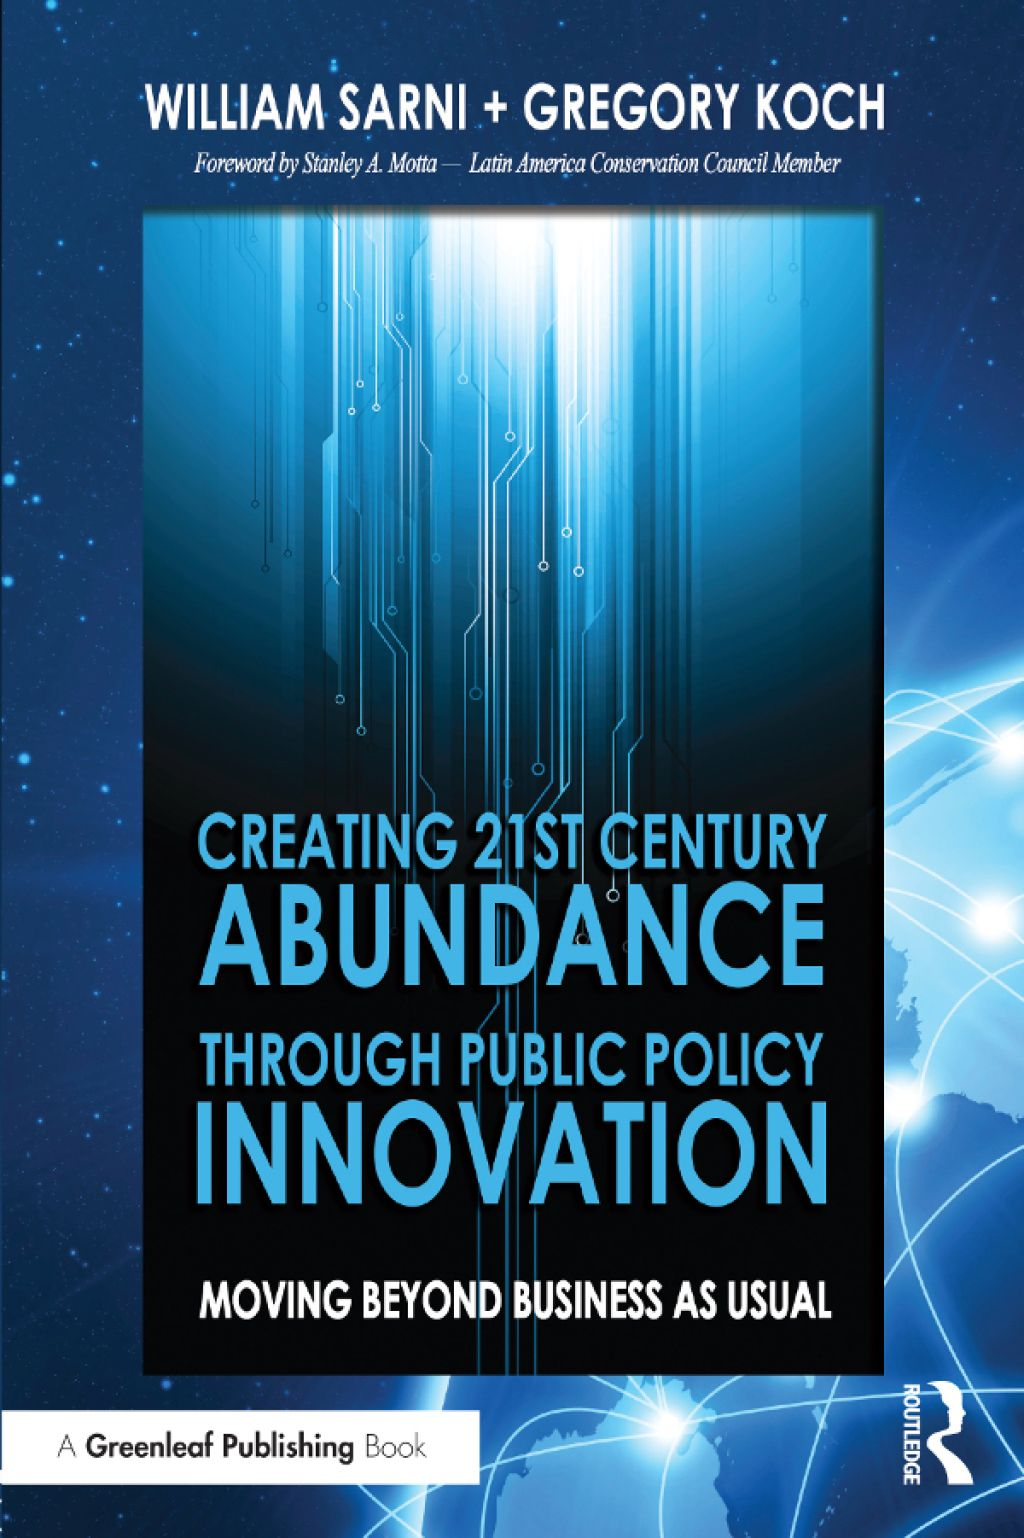 Creating 21st Century Abundance through Public Policy